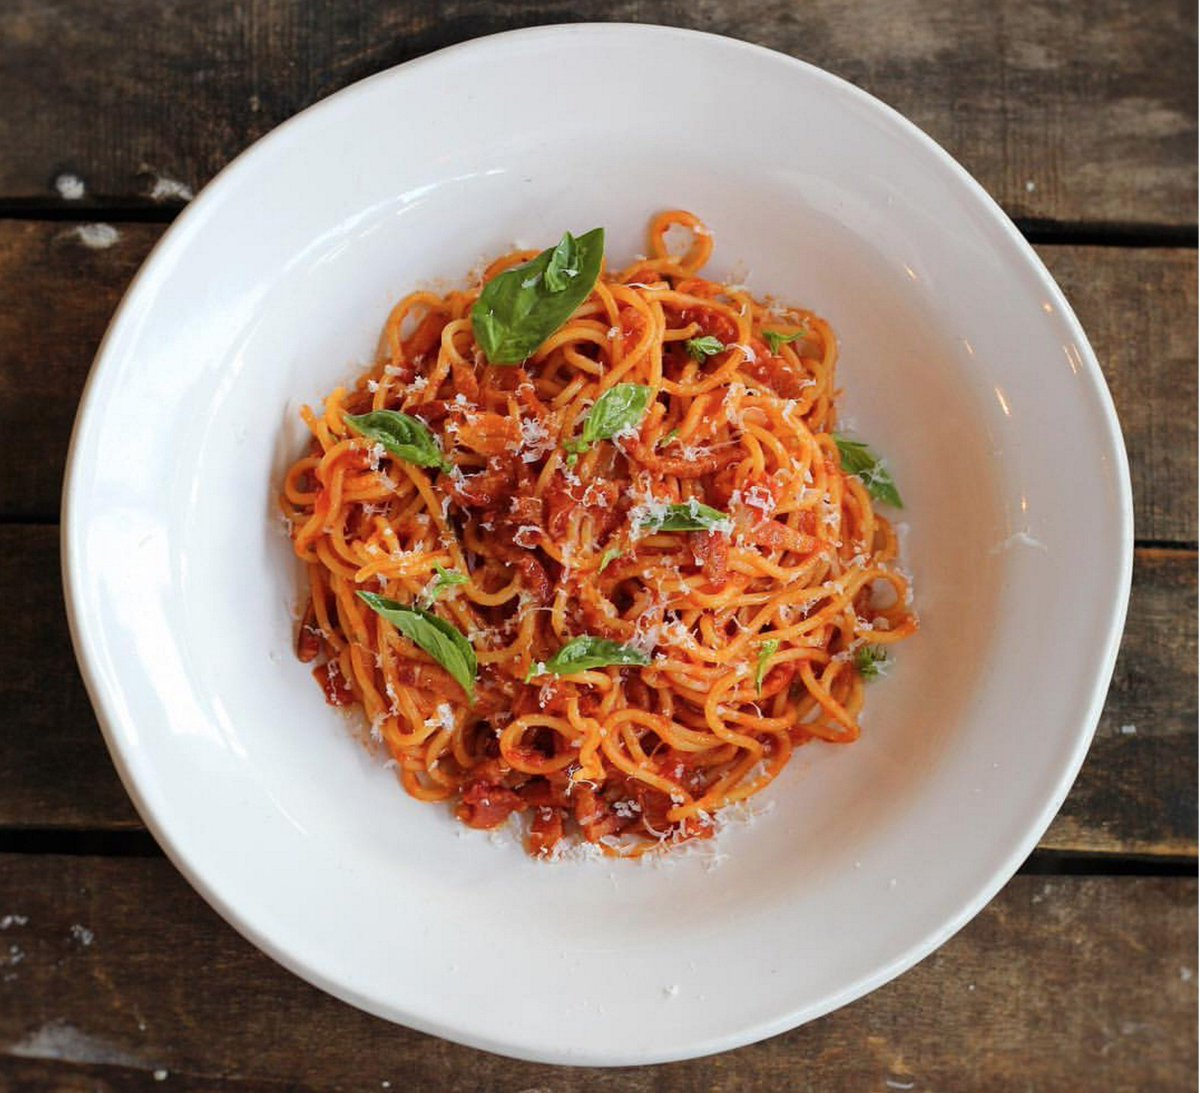 "Join Jamie's support for Italy by ordering ""Pasta Amatriciana"" #eatforitaly https://t.co/To6Oxk7is9 #FoodRevolution https://t.co/IbOu0ps4EW"